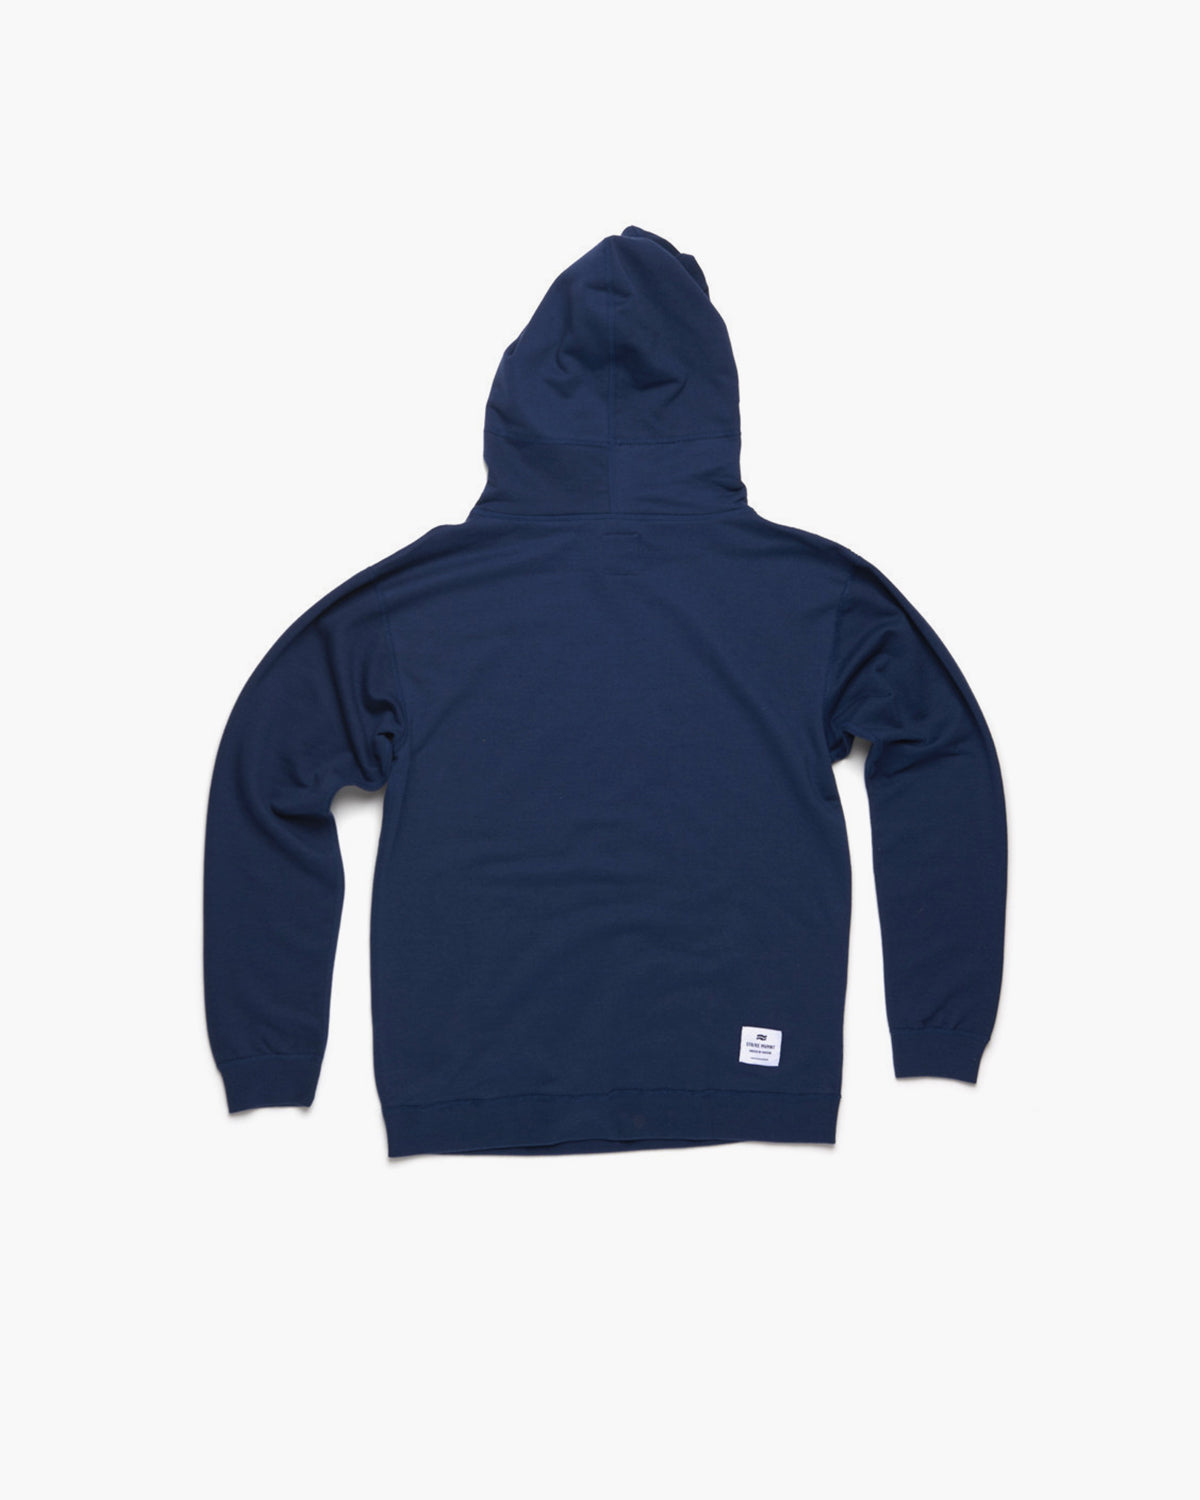 STRIKE MVMNT Keeper Hoodie - Stamp in Navy